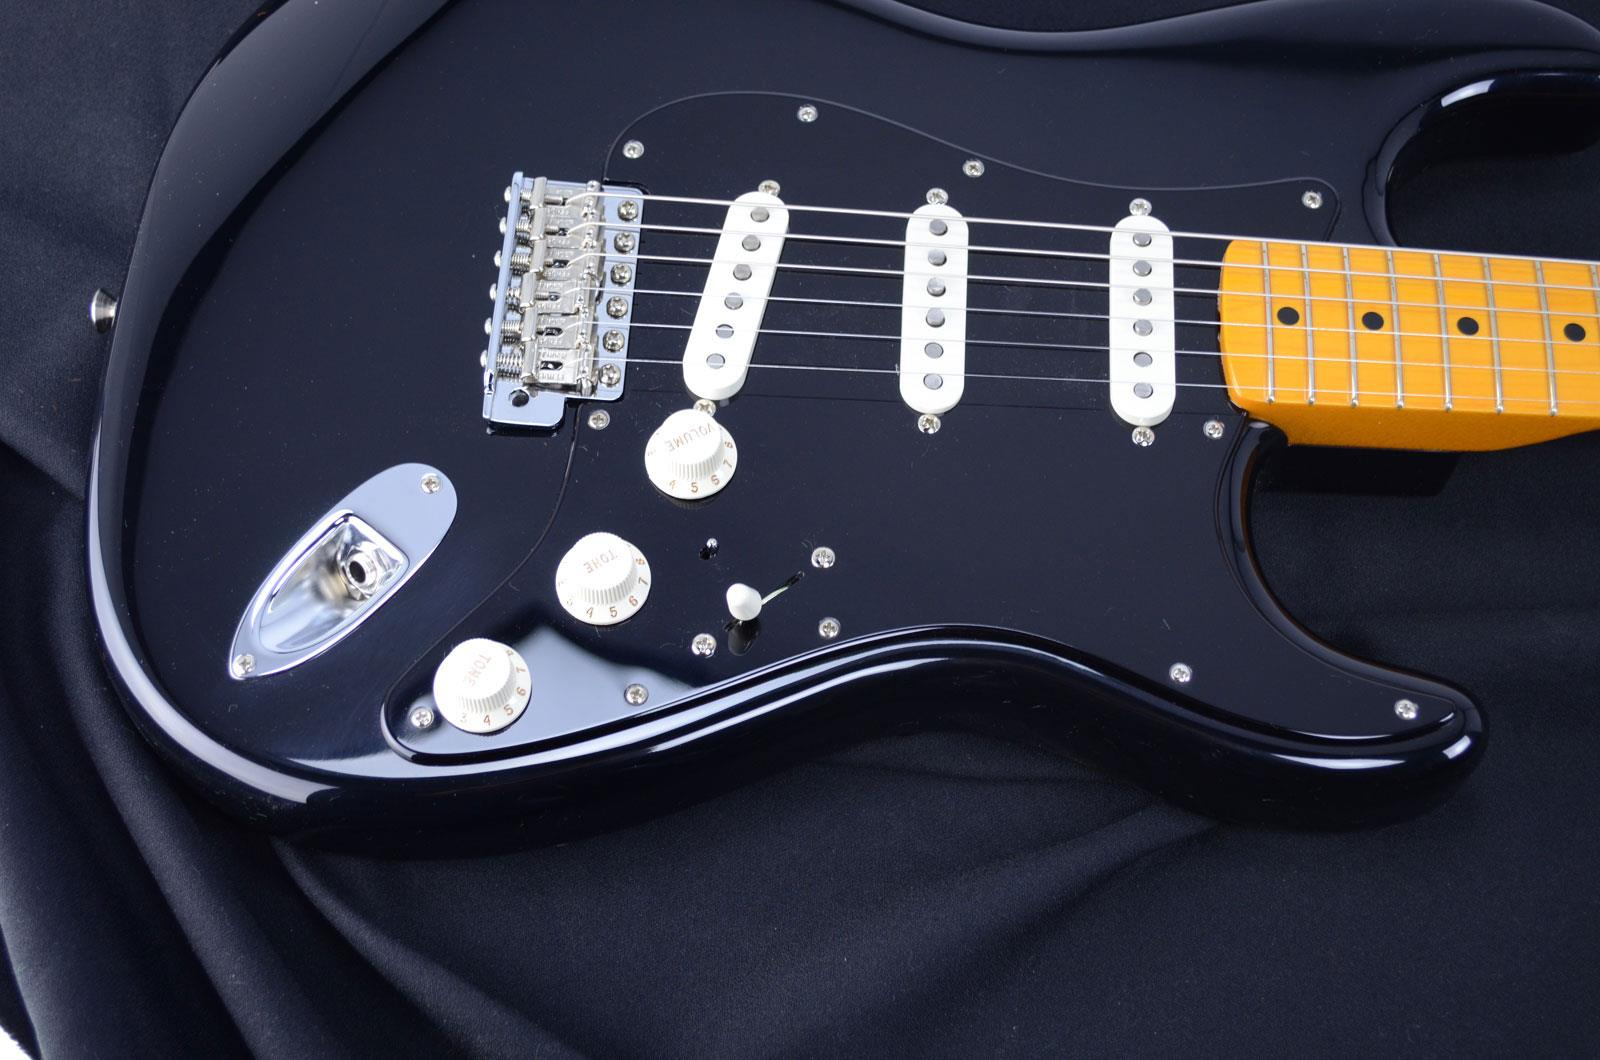 fender tbx pot stratocaster wiring diagram jpg with Tbx Wiring Diagram on 490800 Projet Cablage Guitare likewise Left Handed Fender Stratocaster Wiring Diagram likewise Tbx Tone Controls Installation in addition Tbx Wiring Diagram further Schematics For Pickups And Guitars.